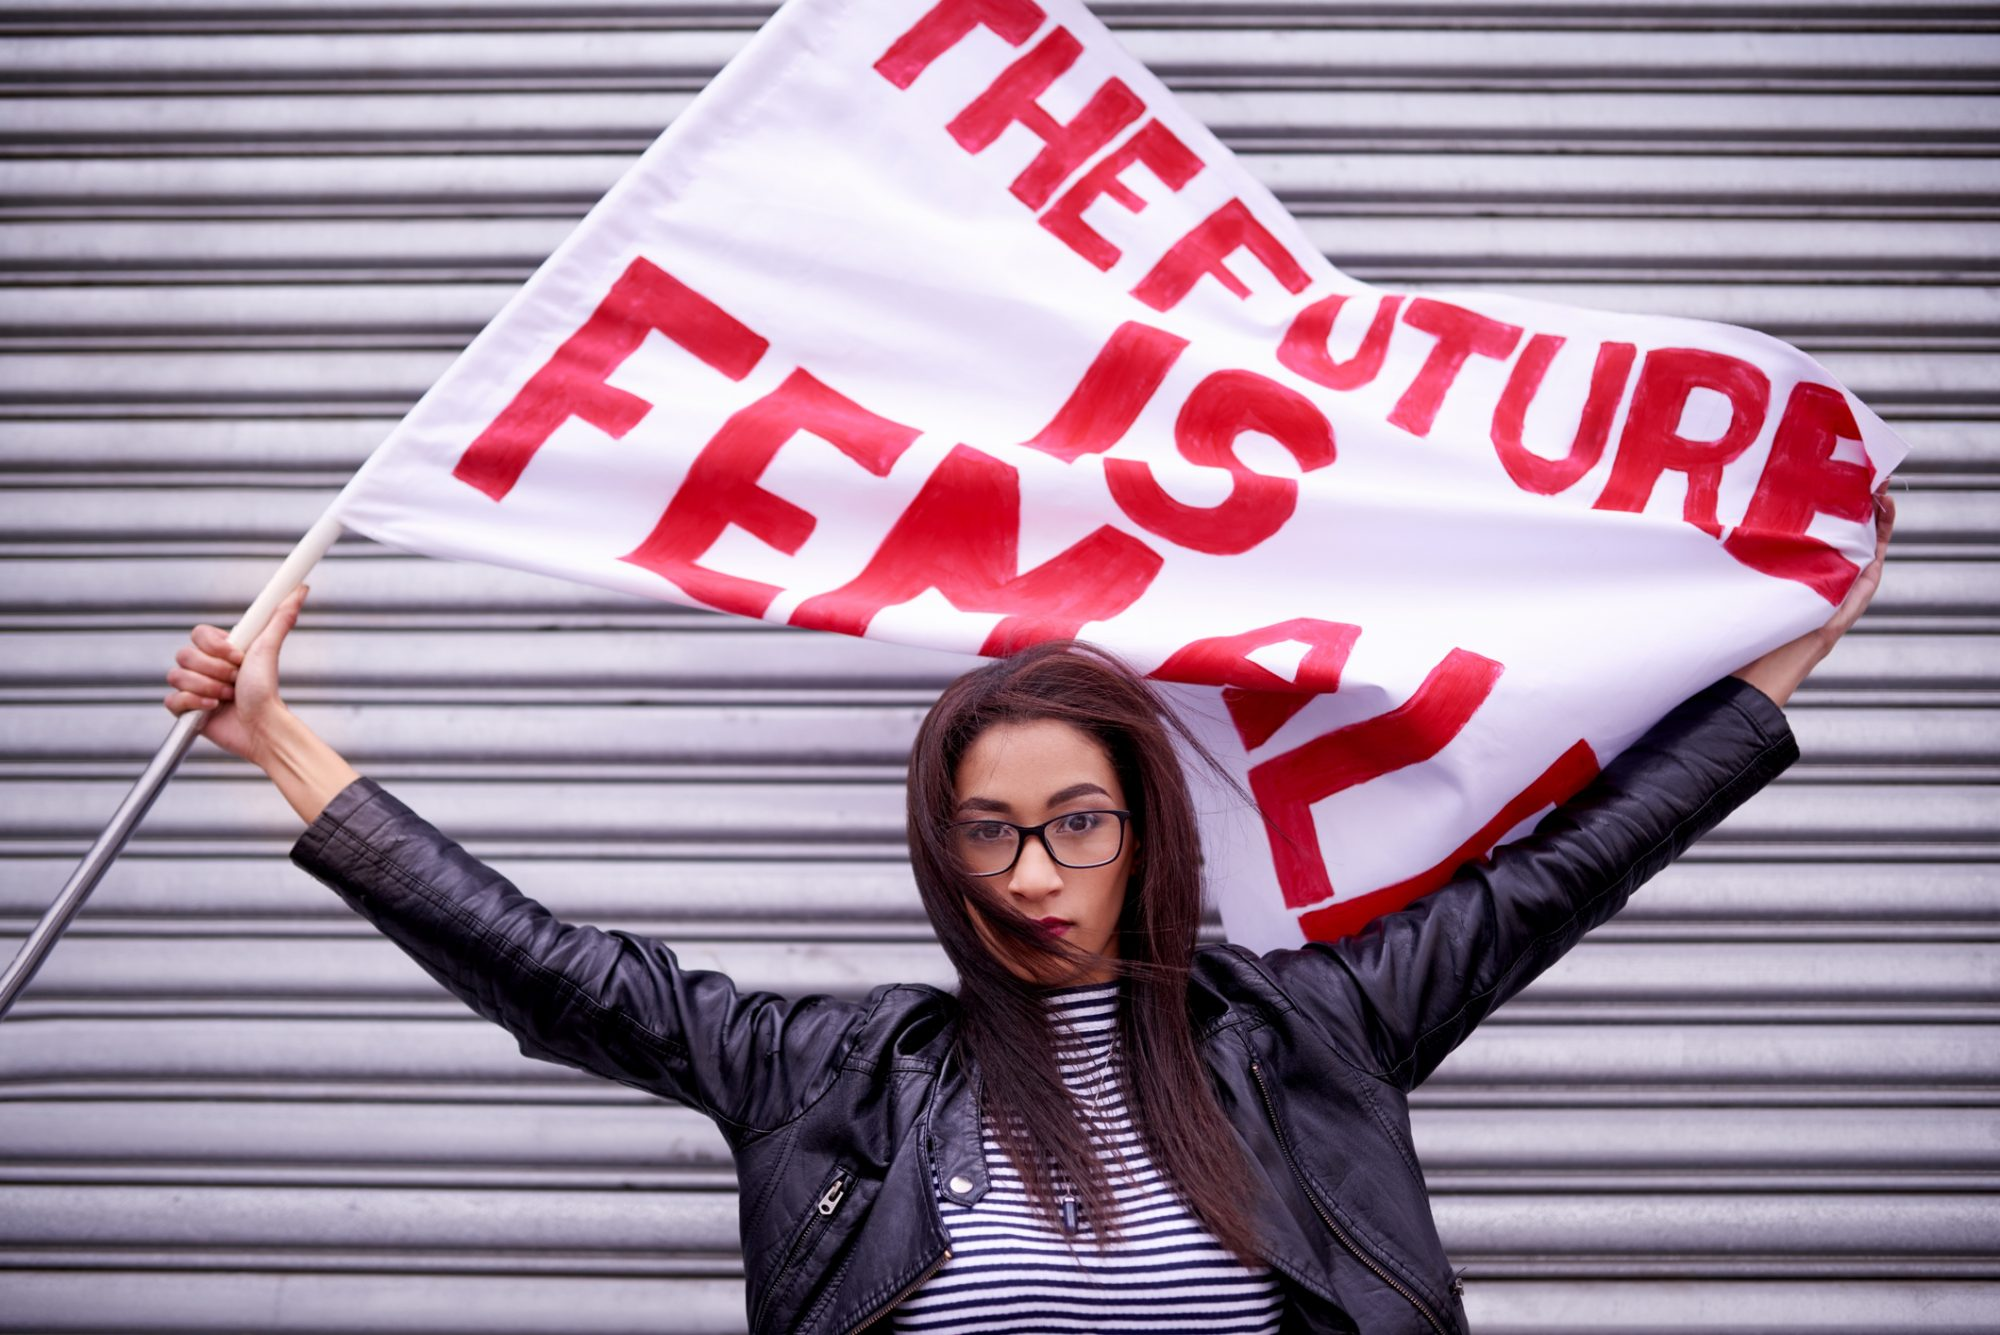 """Portrait of a woman holding a flag that reads """"The future is female"""" protesting in the city"""